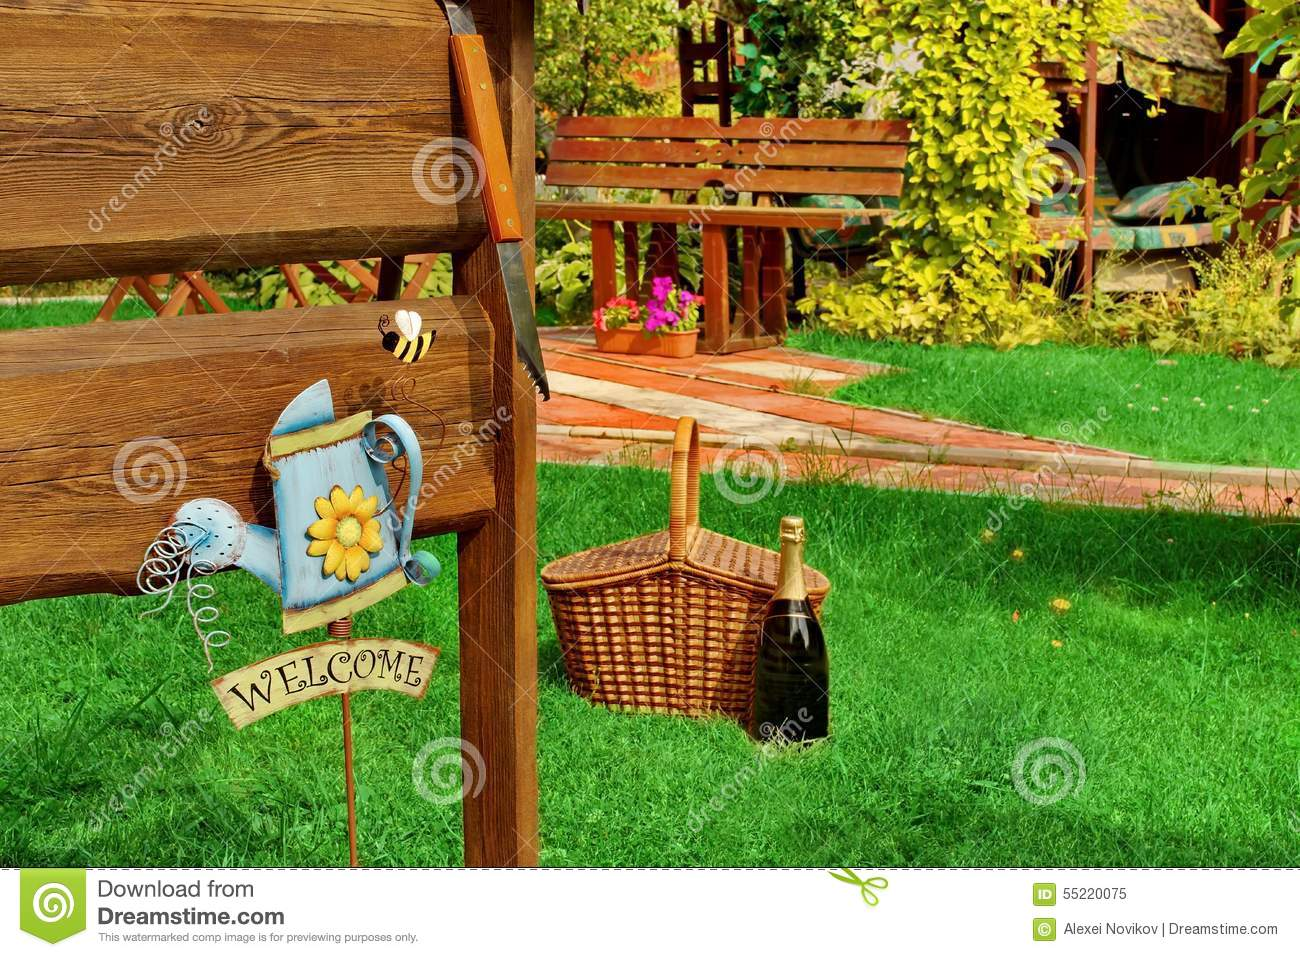 outdoor backyard bbq grill party or picnic scene in the summer